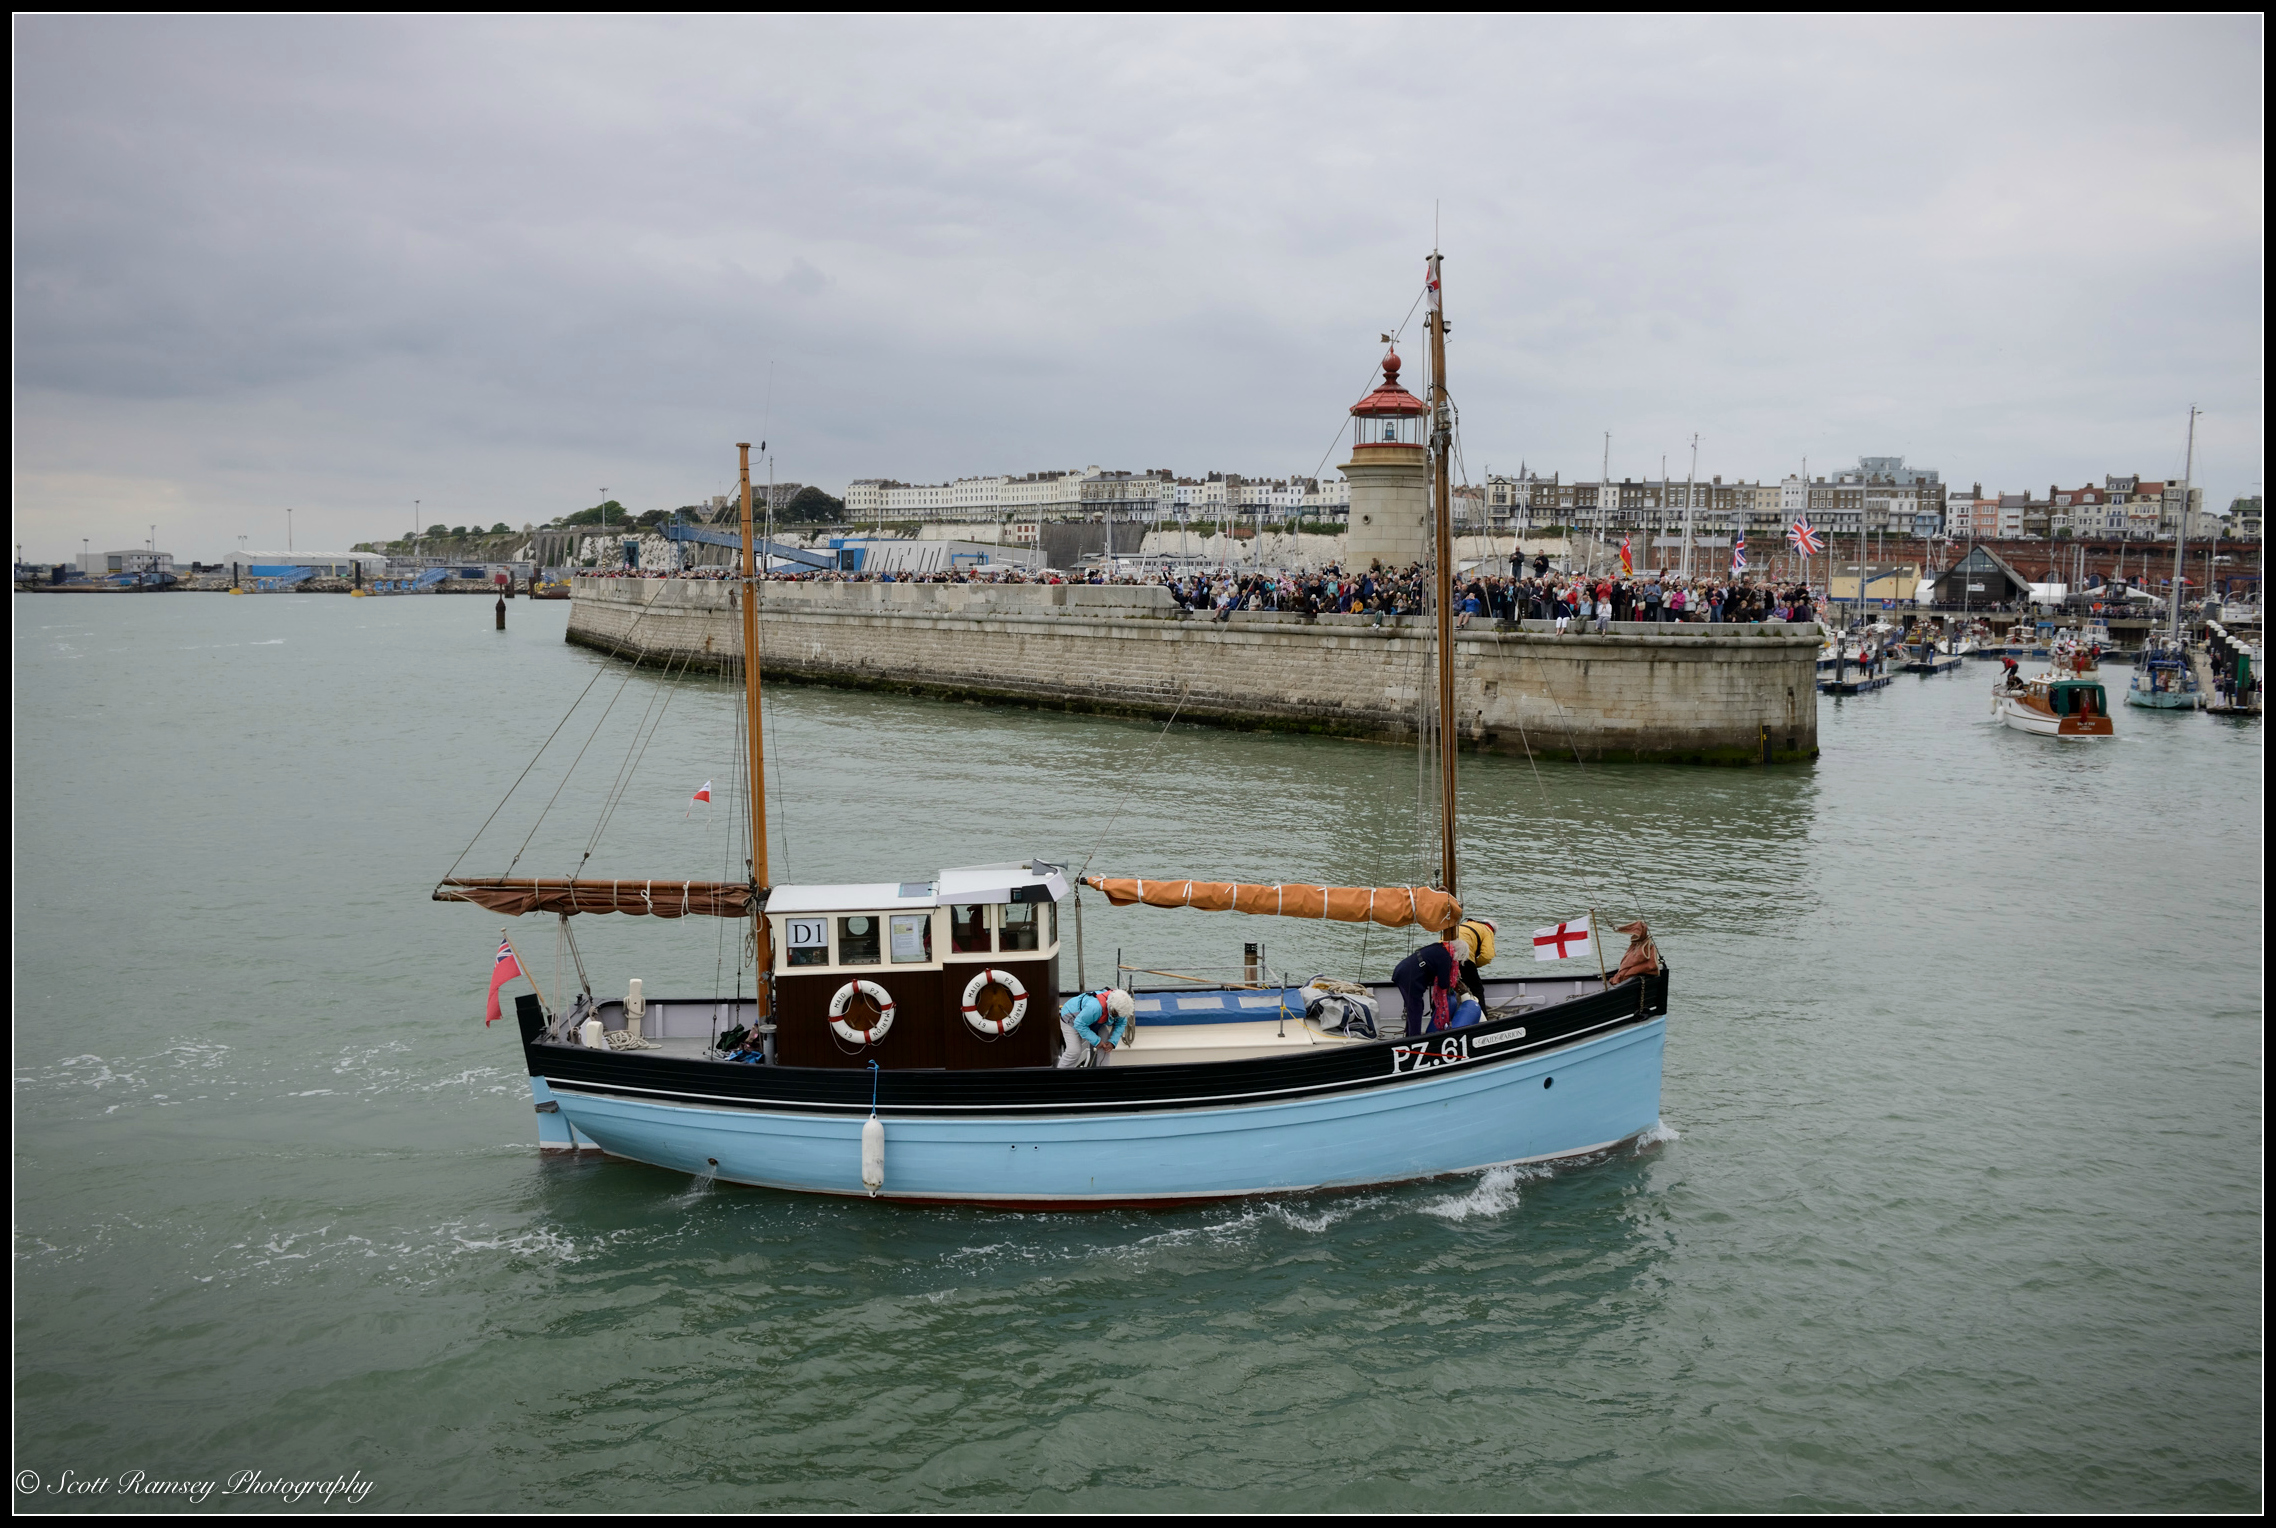 Spectators wave flags and cheer as The Maid Marion, a 1925 Cornish lugger and one of the original Dunkirk Little Ships, returns to the Royal Harbour Marina Ramsgate during a weekend of events to commemorate the 75th anniversary of Operation Dynamo. ©Scott Ramsey Photography